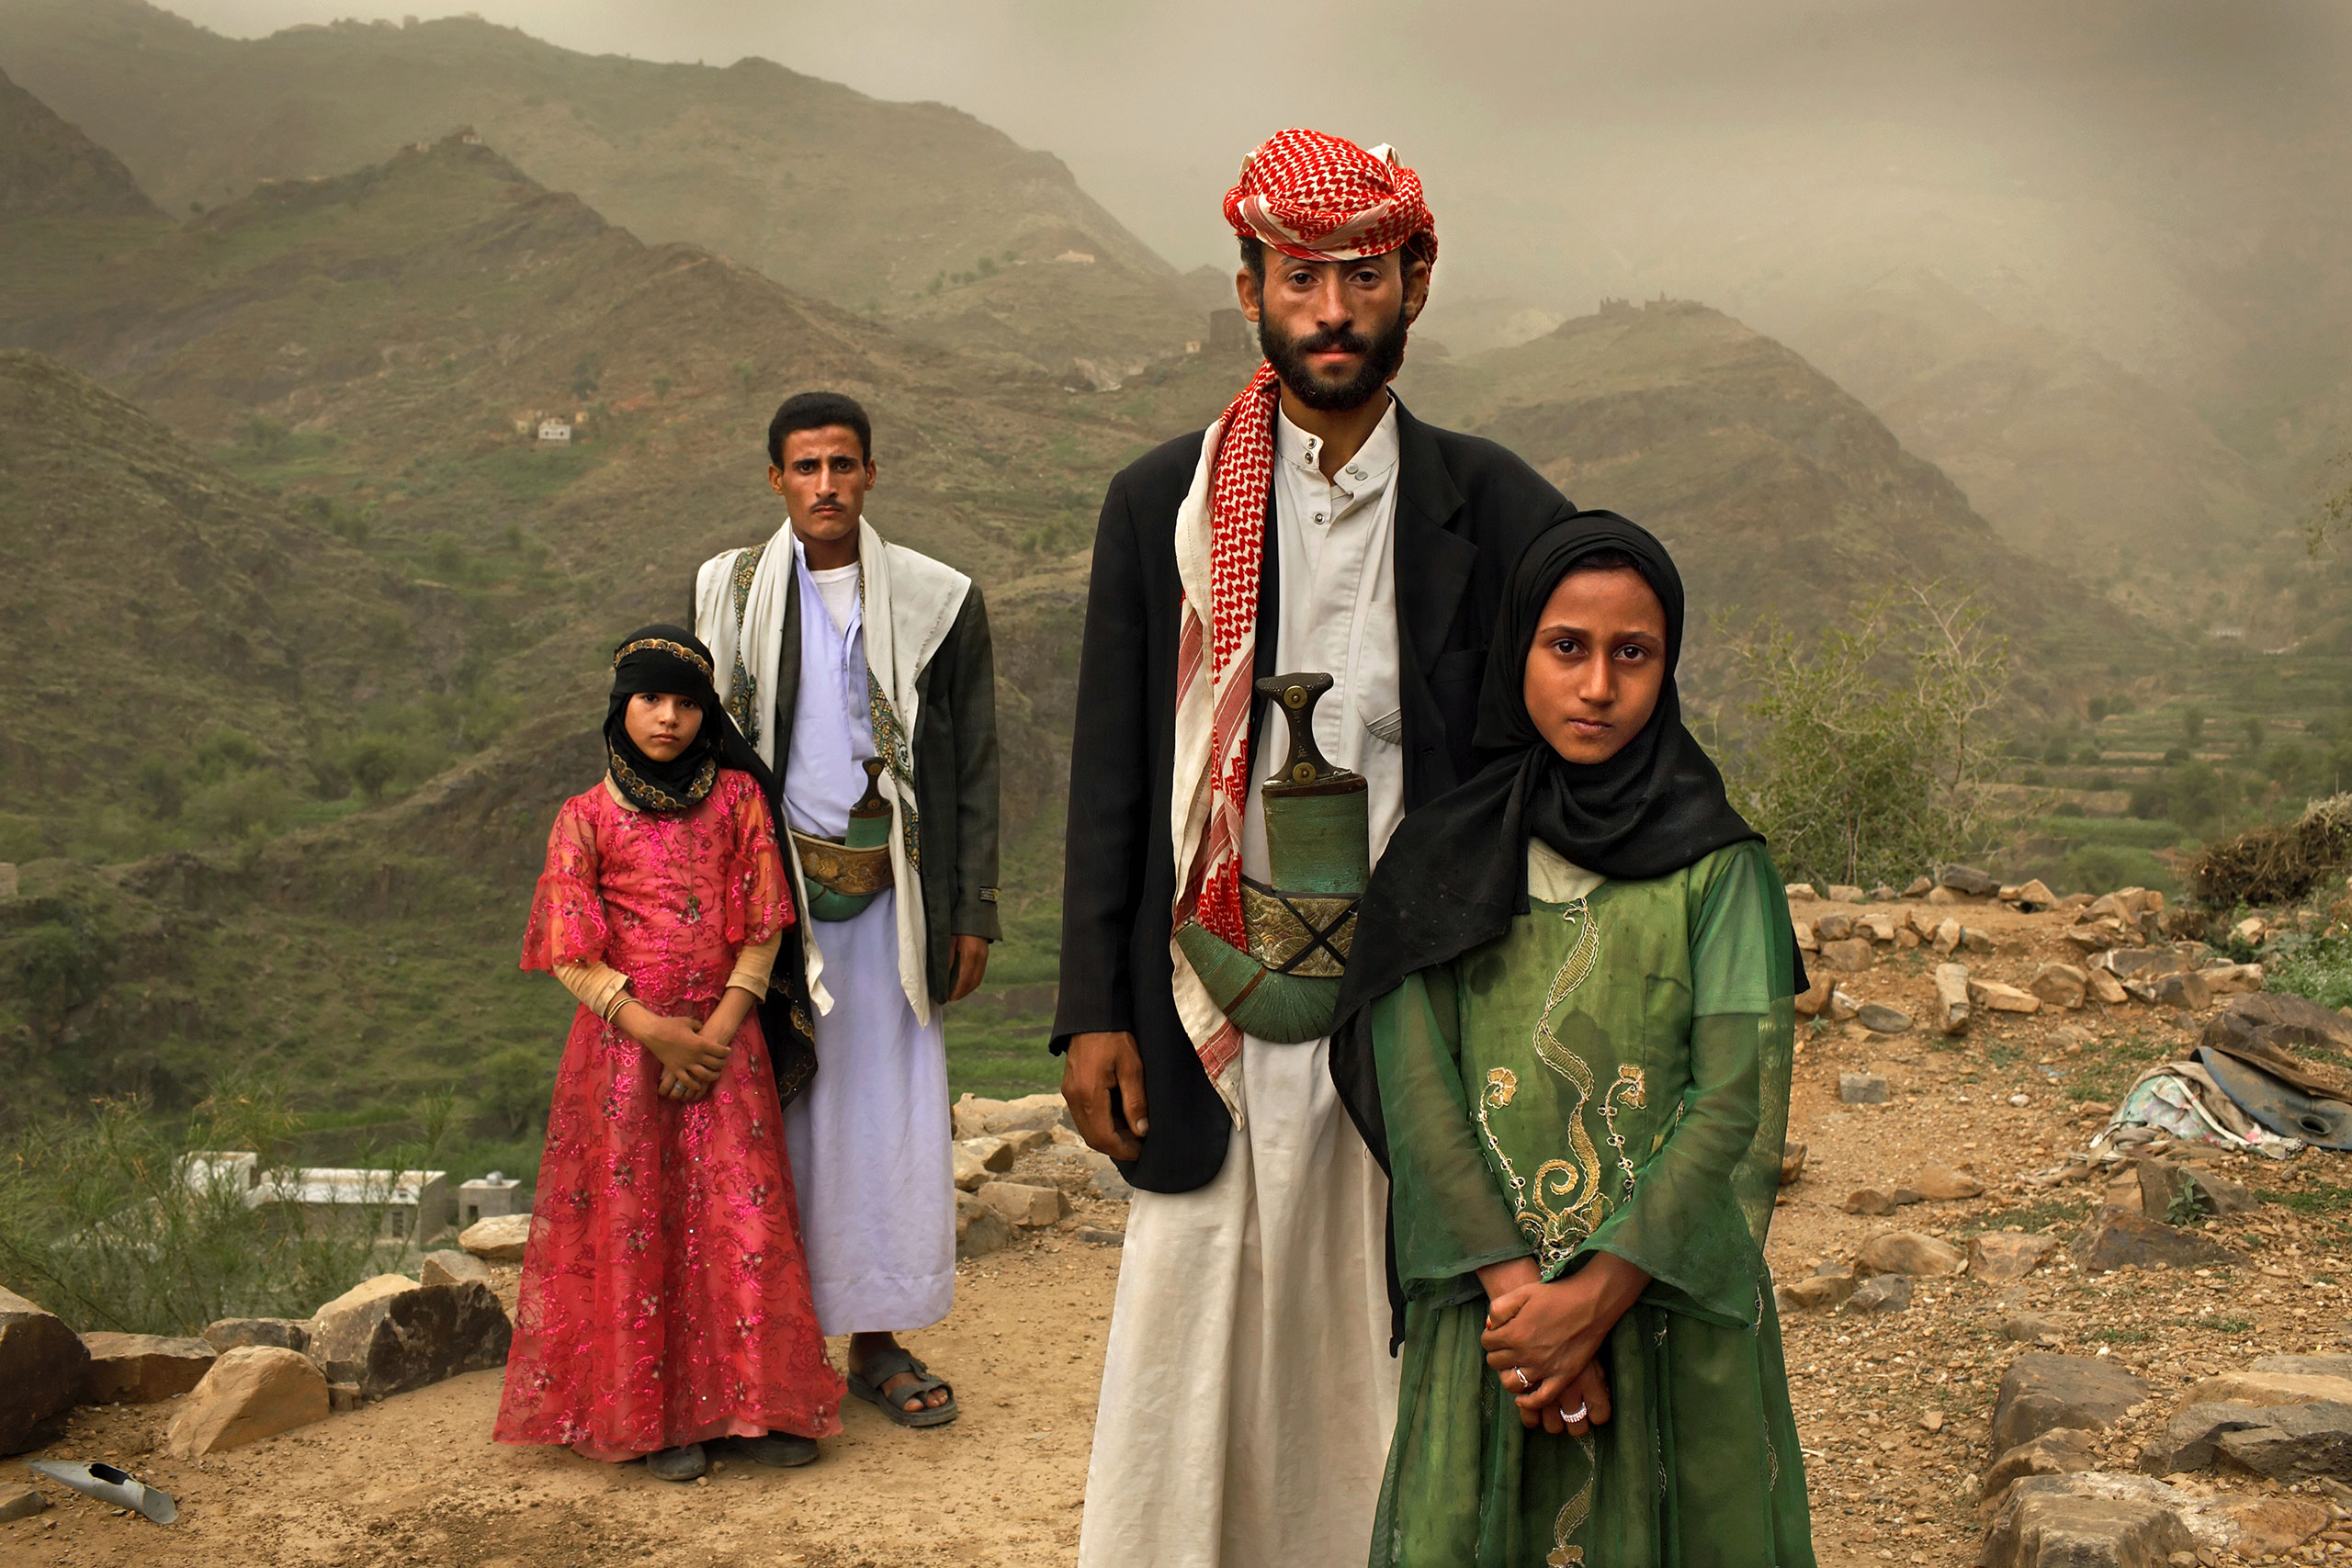 Whenever I saw him, I hid. I hated to see him,  Tahini (in pink) recalls of the early days of her marriage to Mated, when she was 6 and he was 25. The young wife posed for this portrait with former classmate Ghana, also a child bride, outside their mountain home in Hajji, Yemen, in 2010.